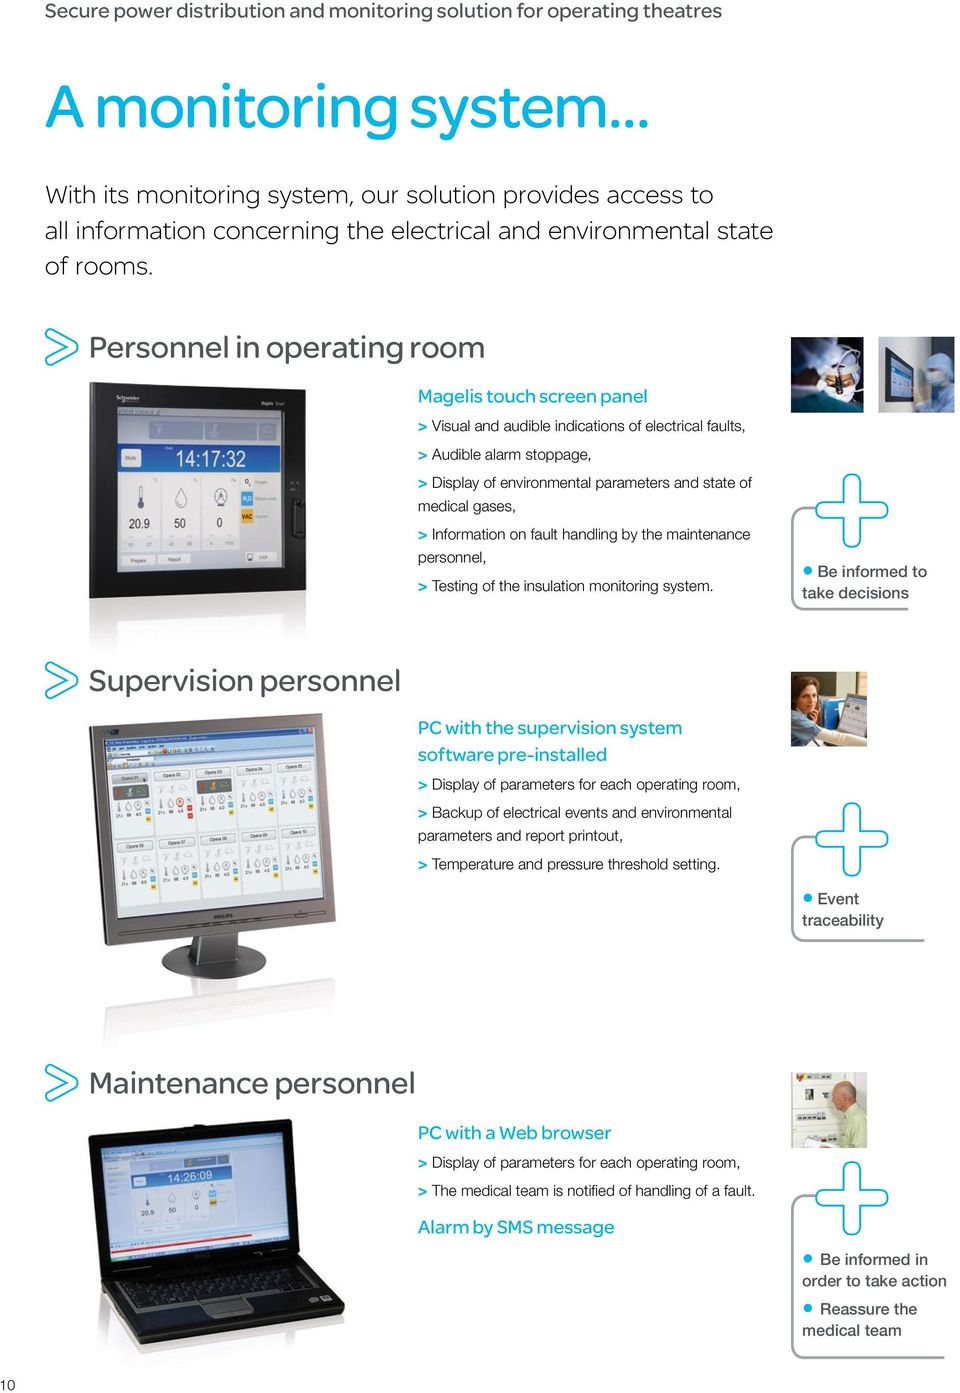 Personnel in operating room Magelis touch screen panel > Visual and audible indications of electrical faults, > Audible alarm stoppage, > Display of environmental parameters and state of medical